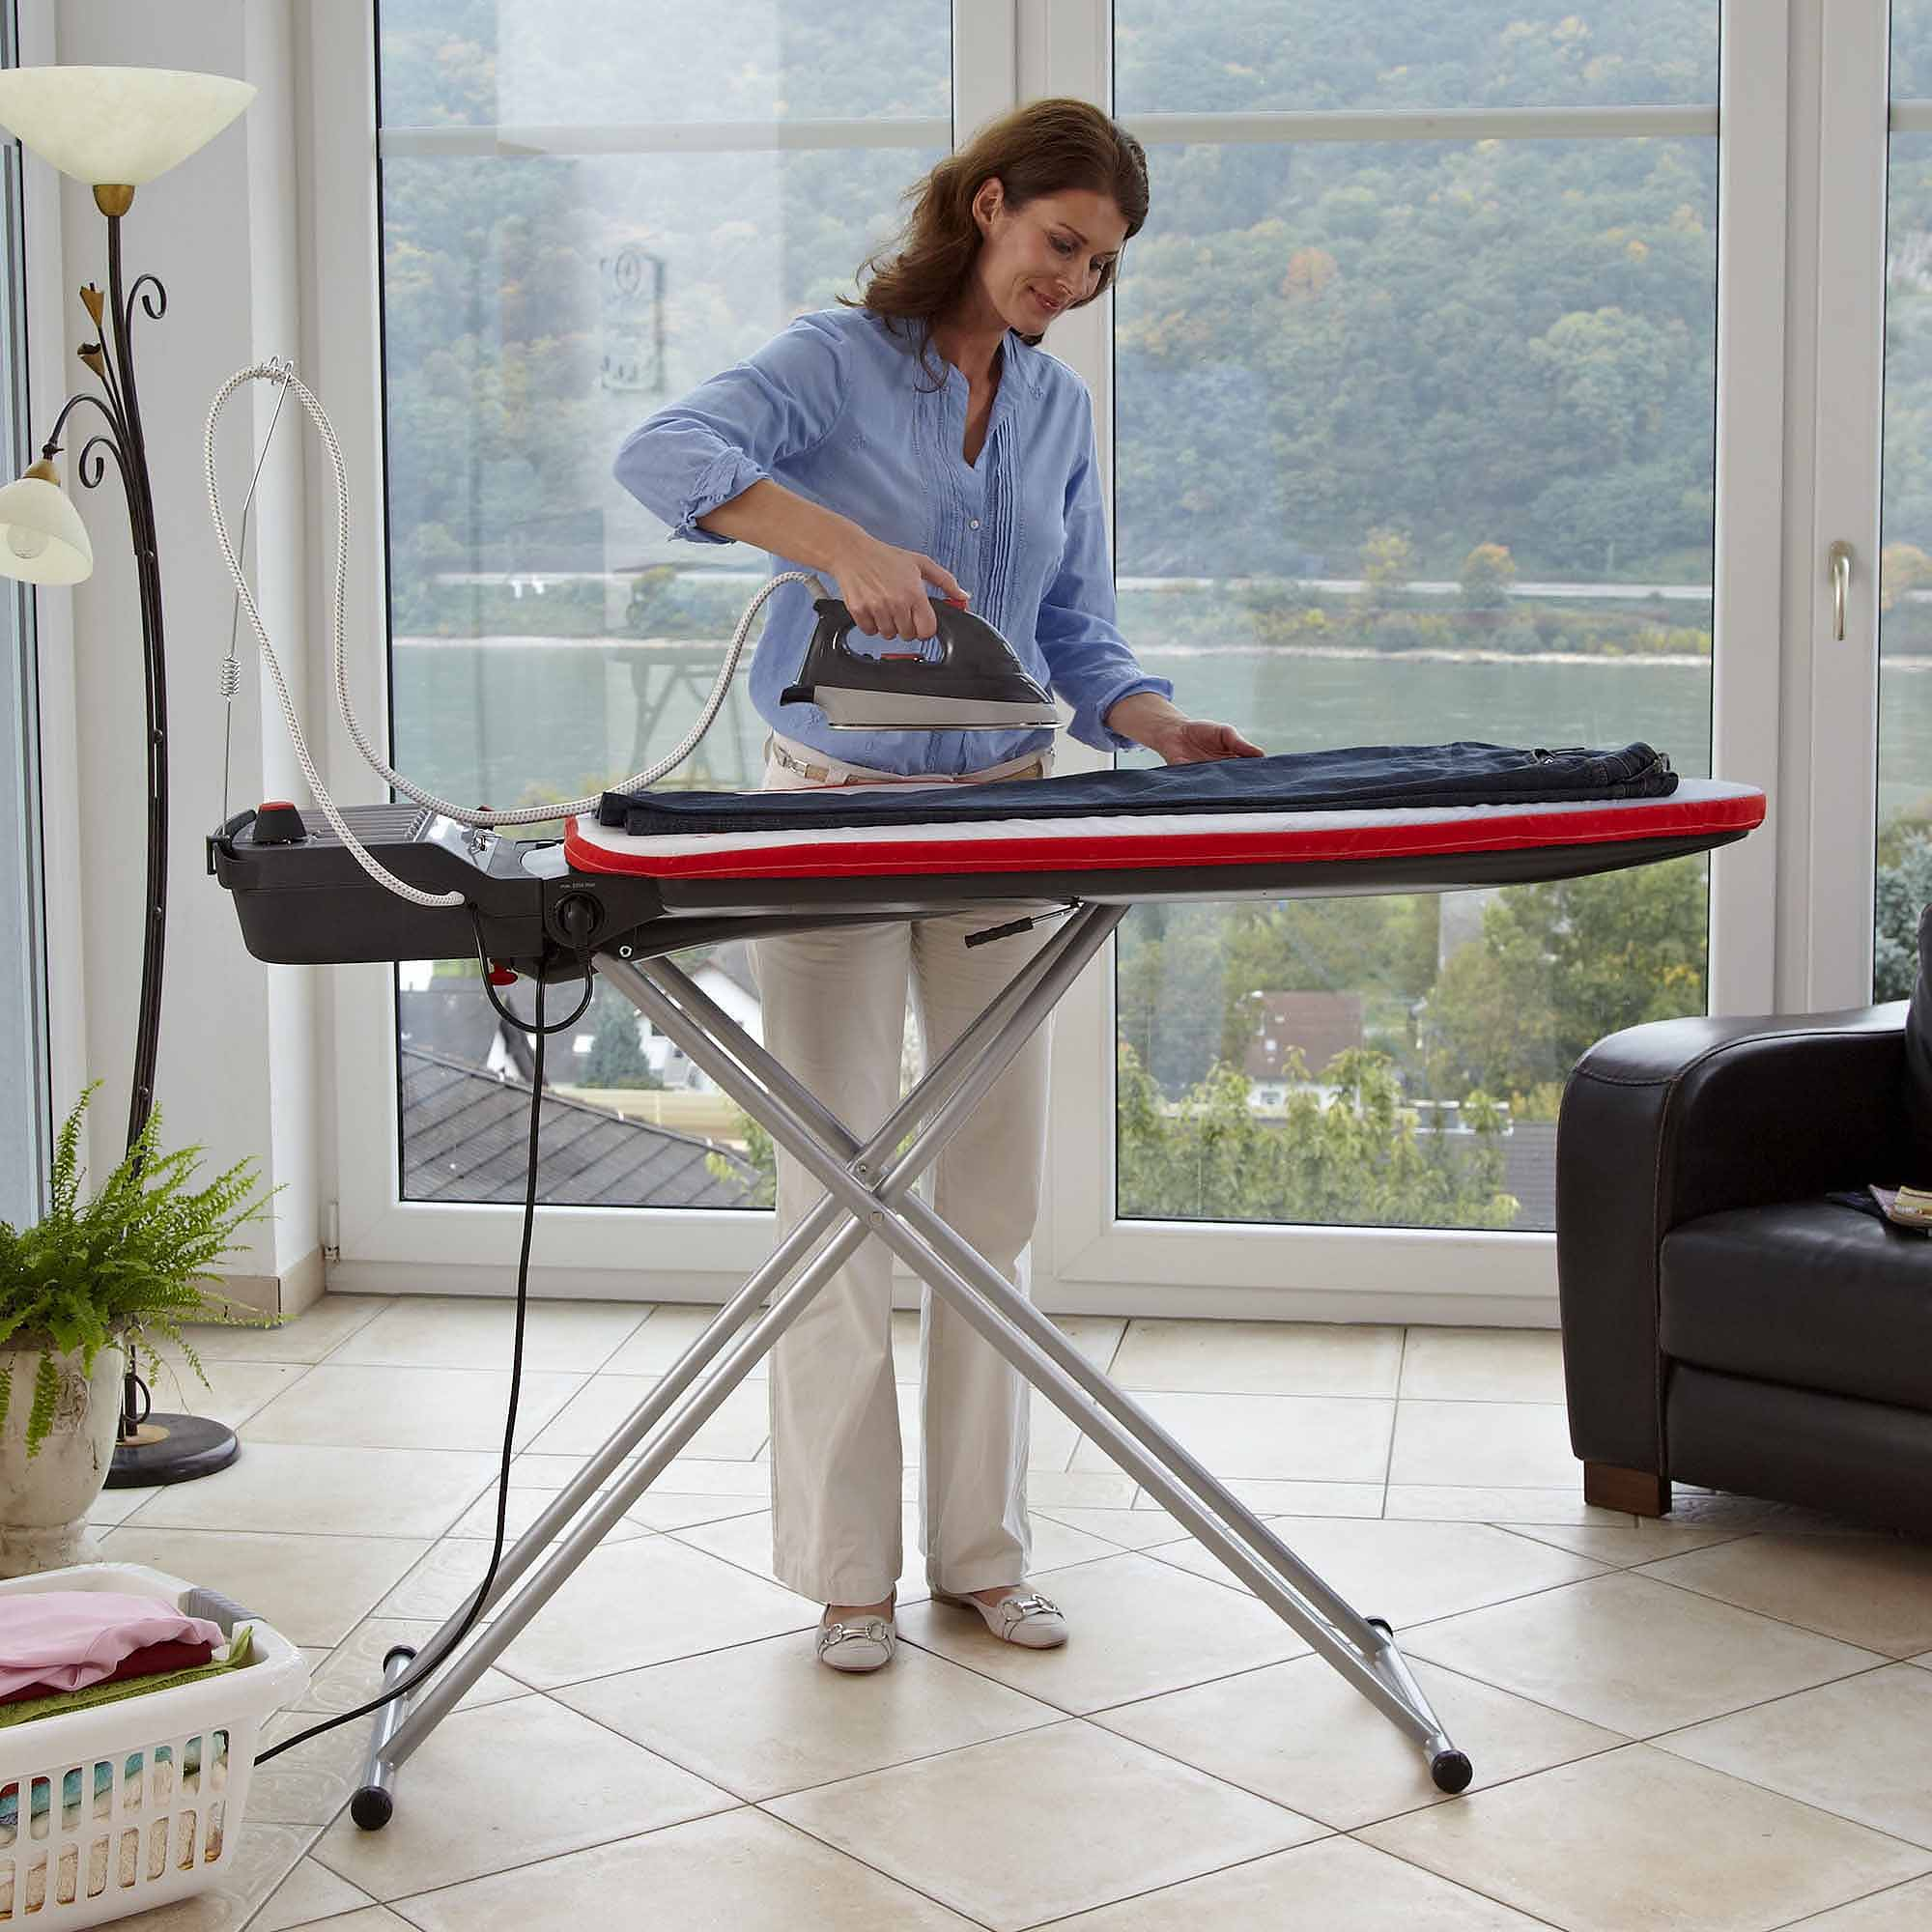 Fine Ironing Board Furniture Leifheit Airactive L Steamer System With Iron Throughout Decorating